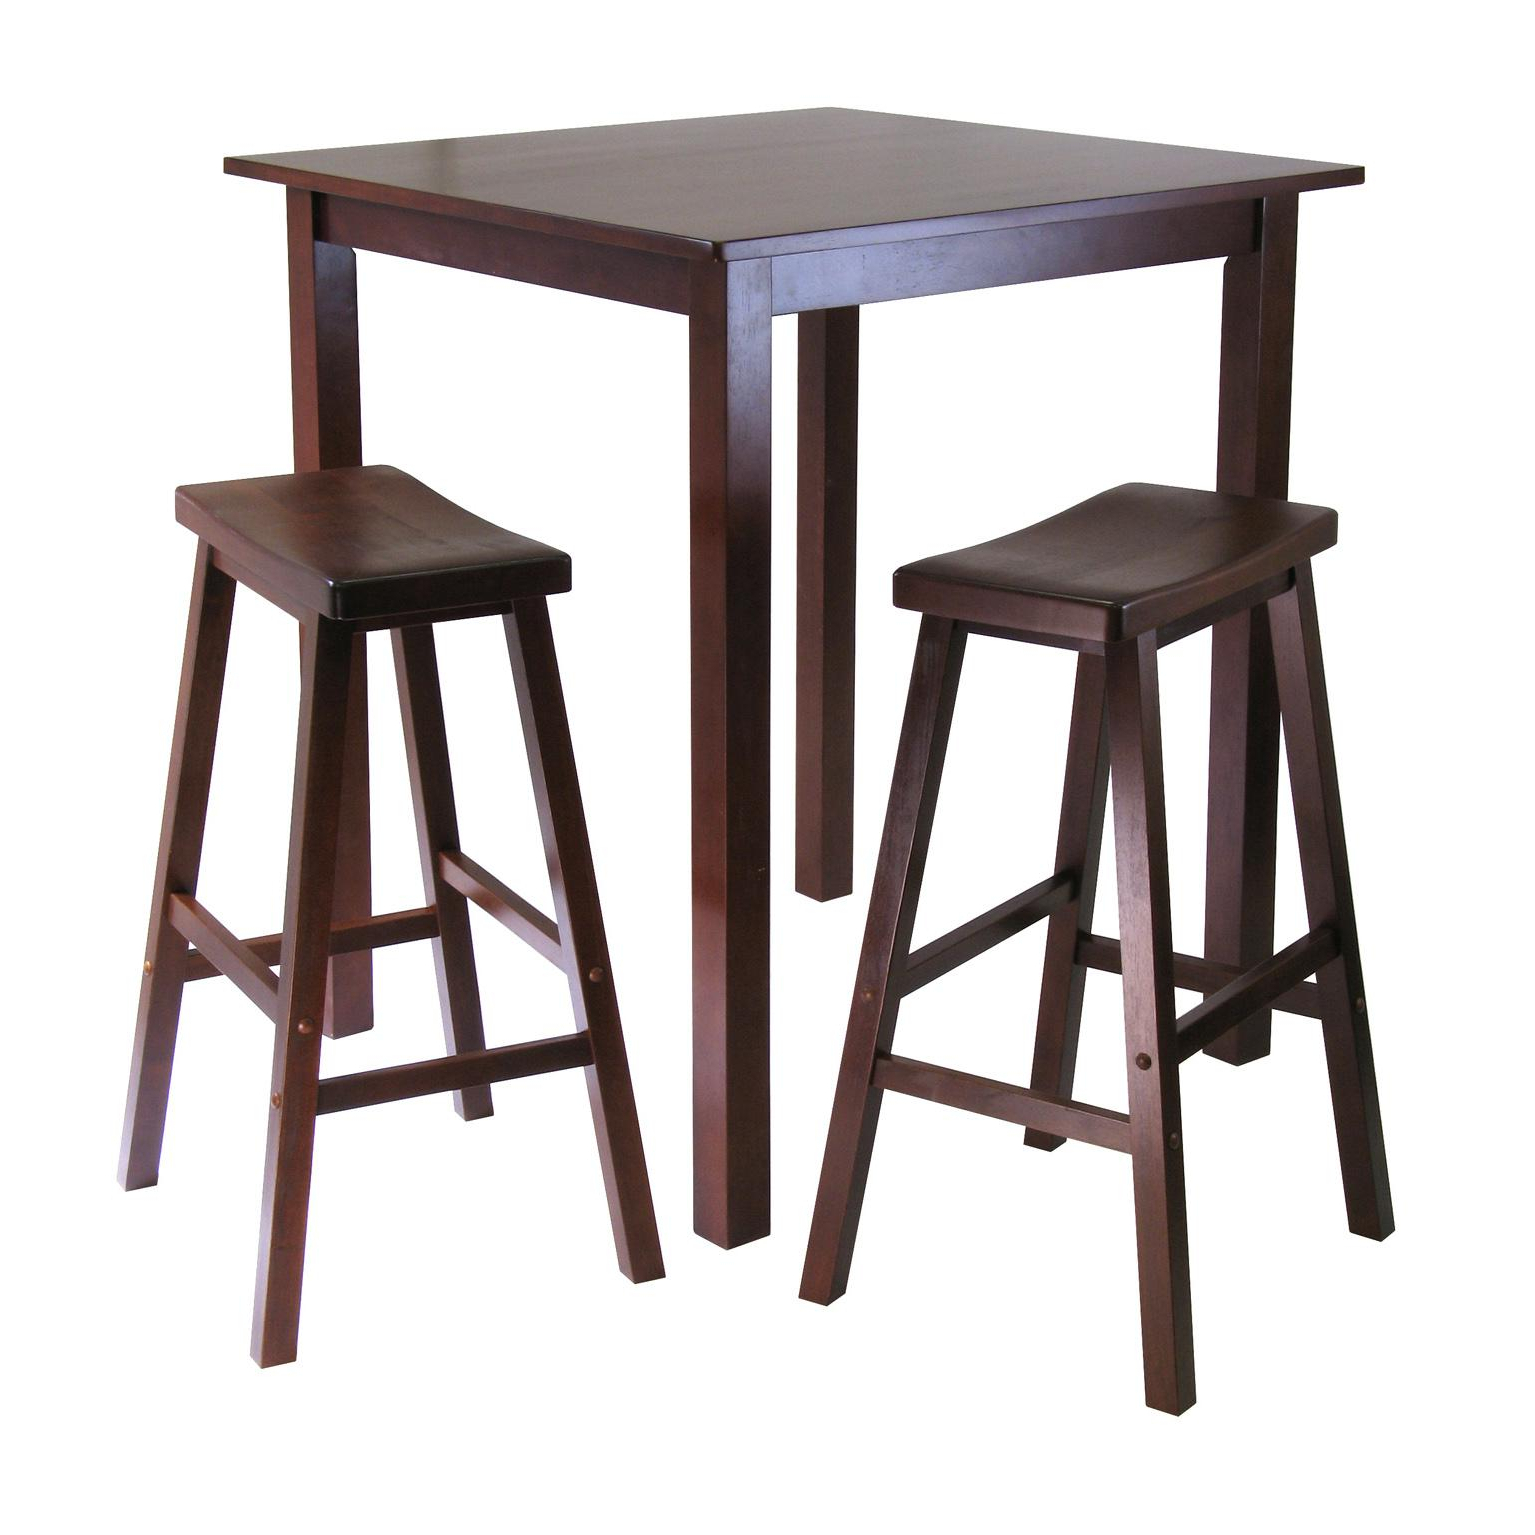 Winsome 3 Piece Counter Height Dining Sets Within Well Liked Amazon: Winsome's Parkland 3 Piece Square High/pub Table Set In (View 22 of 25)